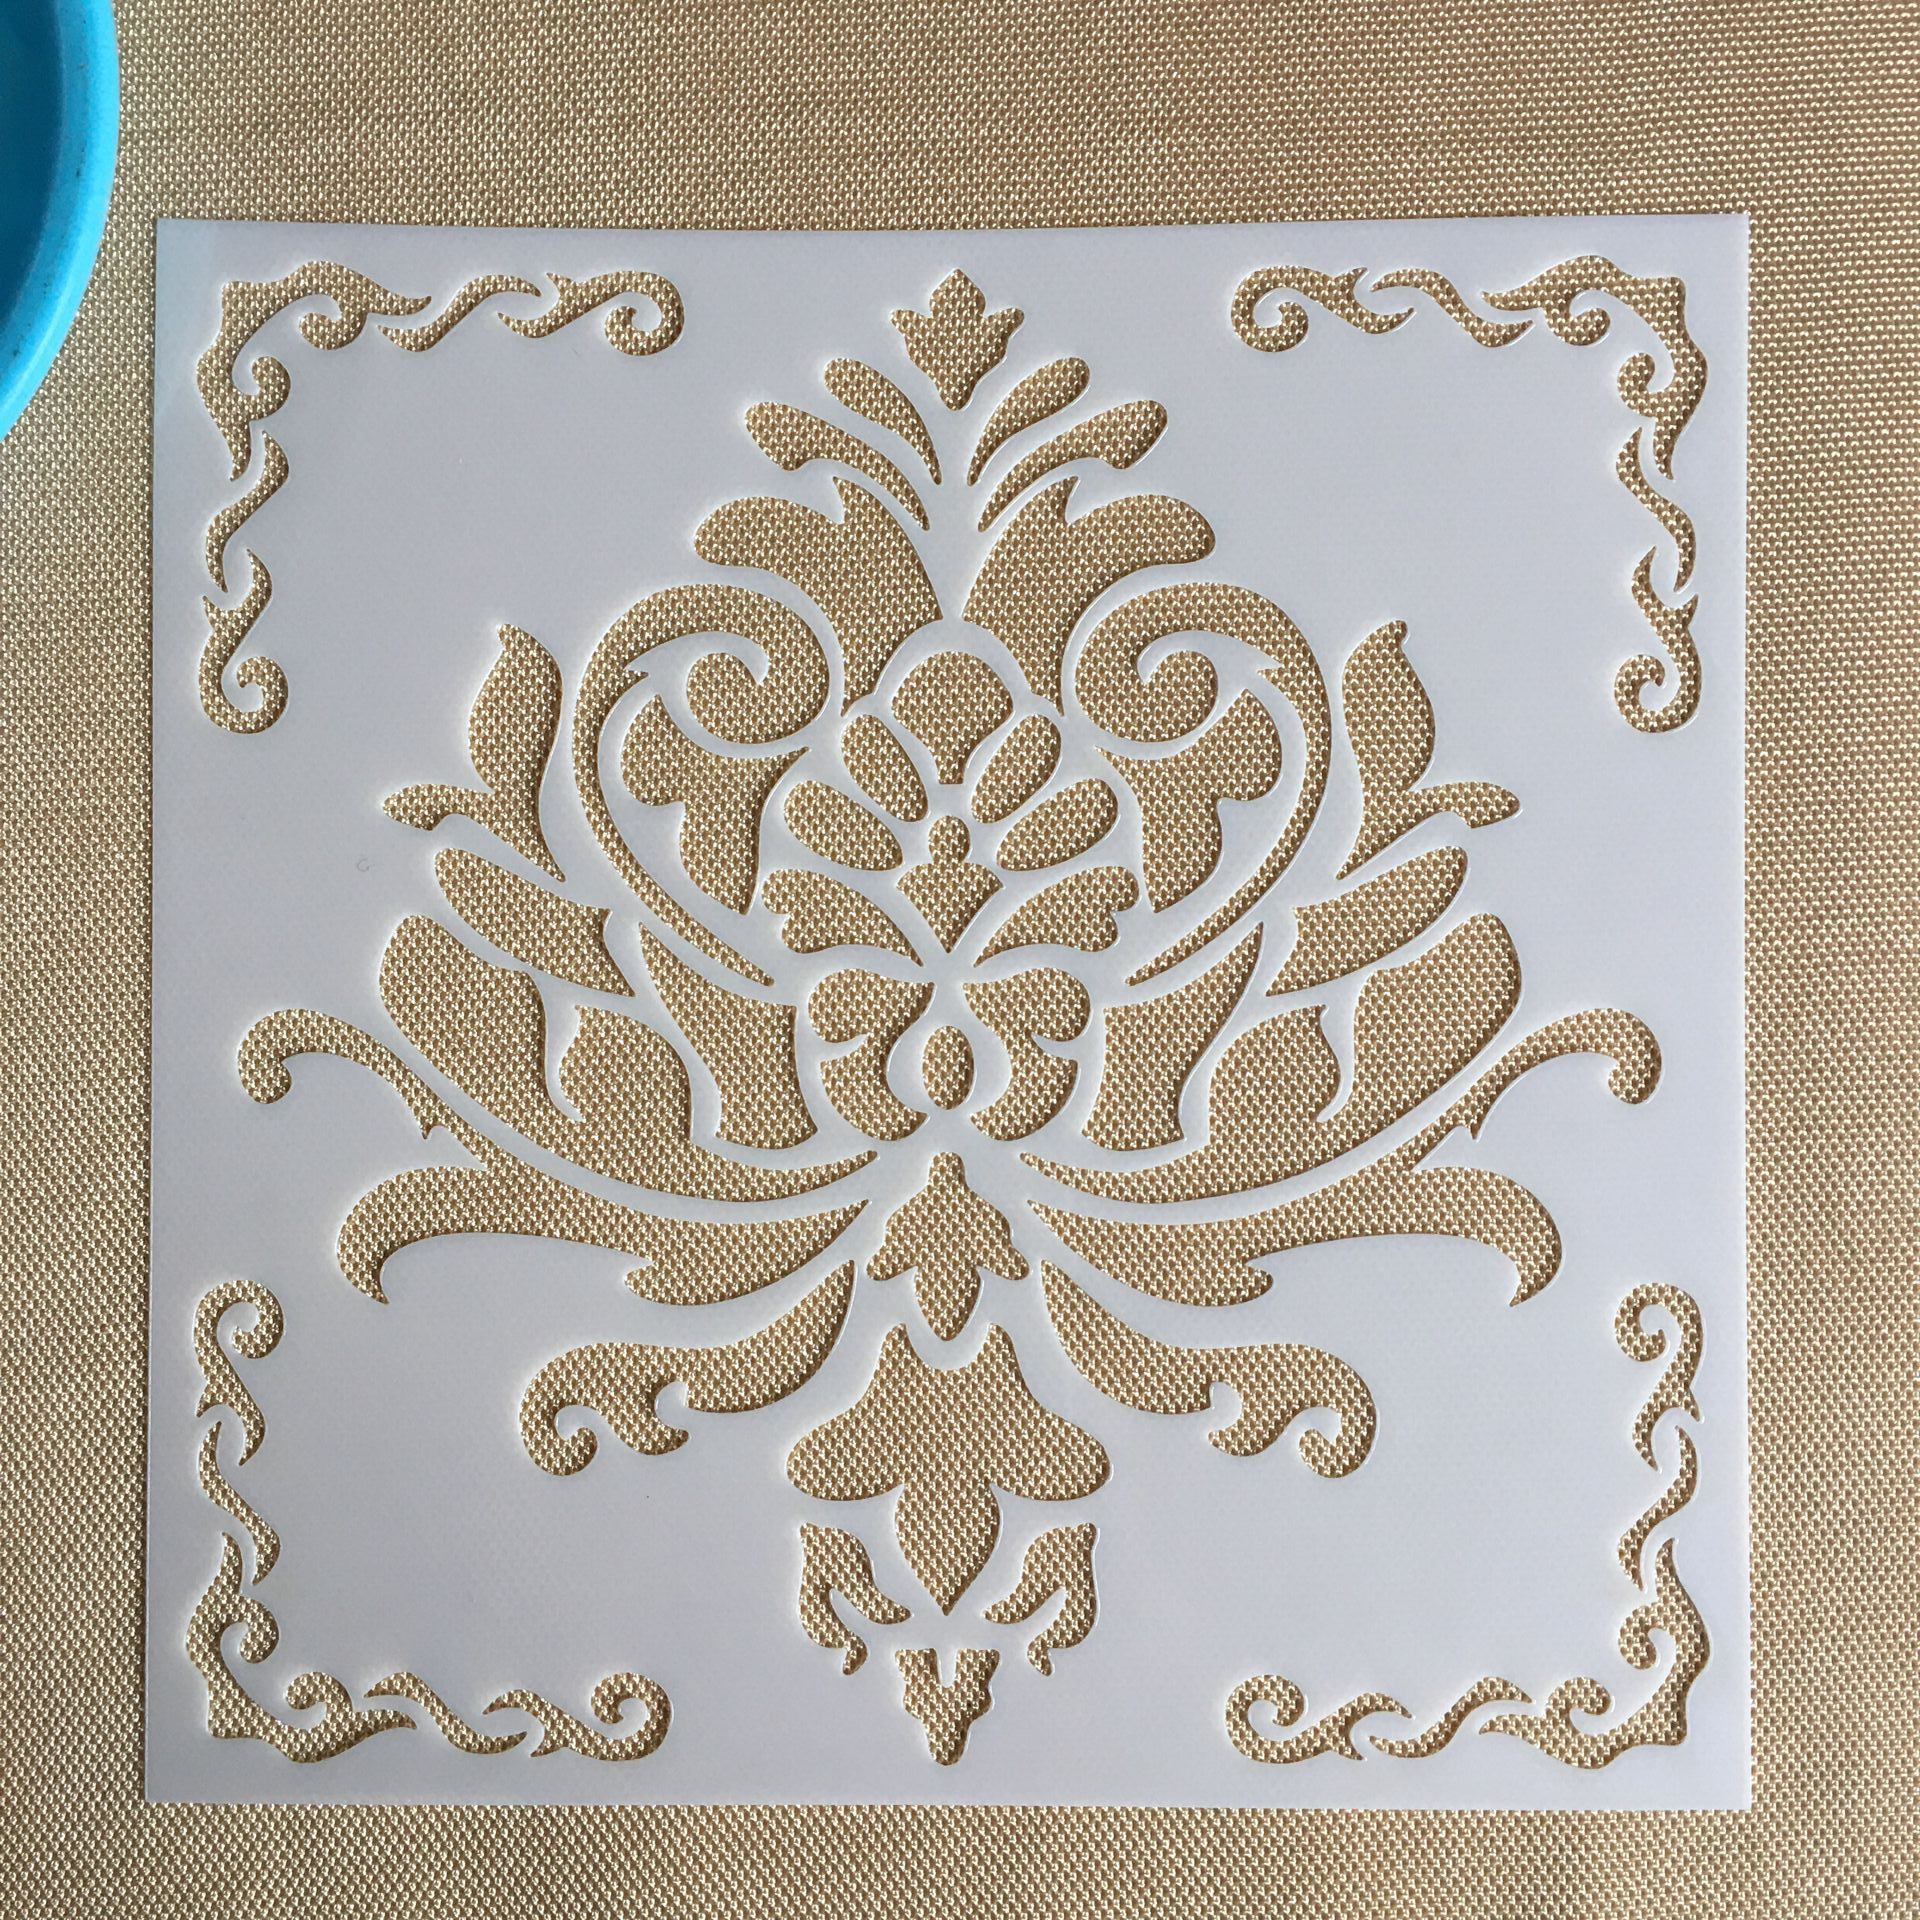 Mandala 1pc 15 * 15cm  Mold DIY Home Decoration Drawing Template Laser Cutting Wall Template Painting Tile Tiles Stencil